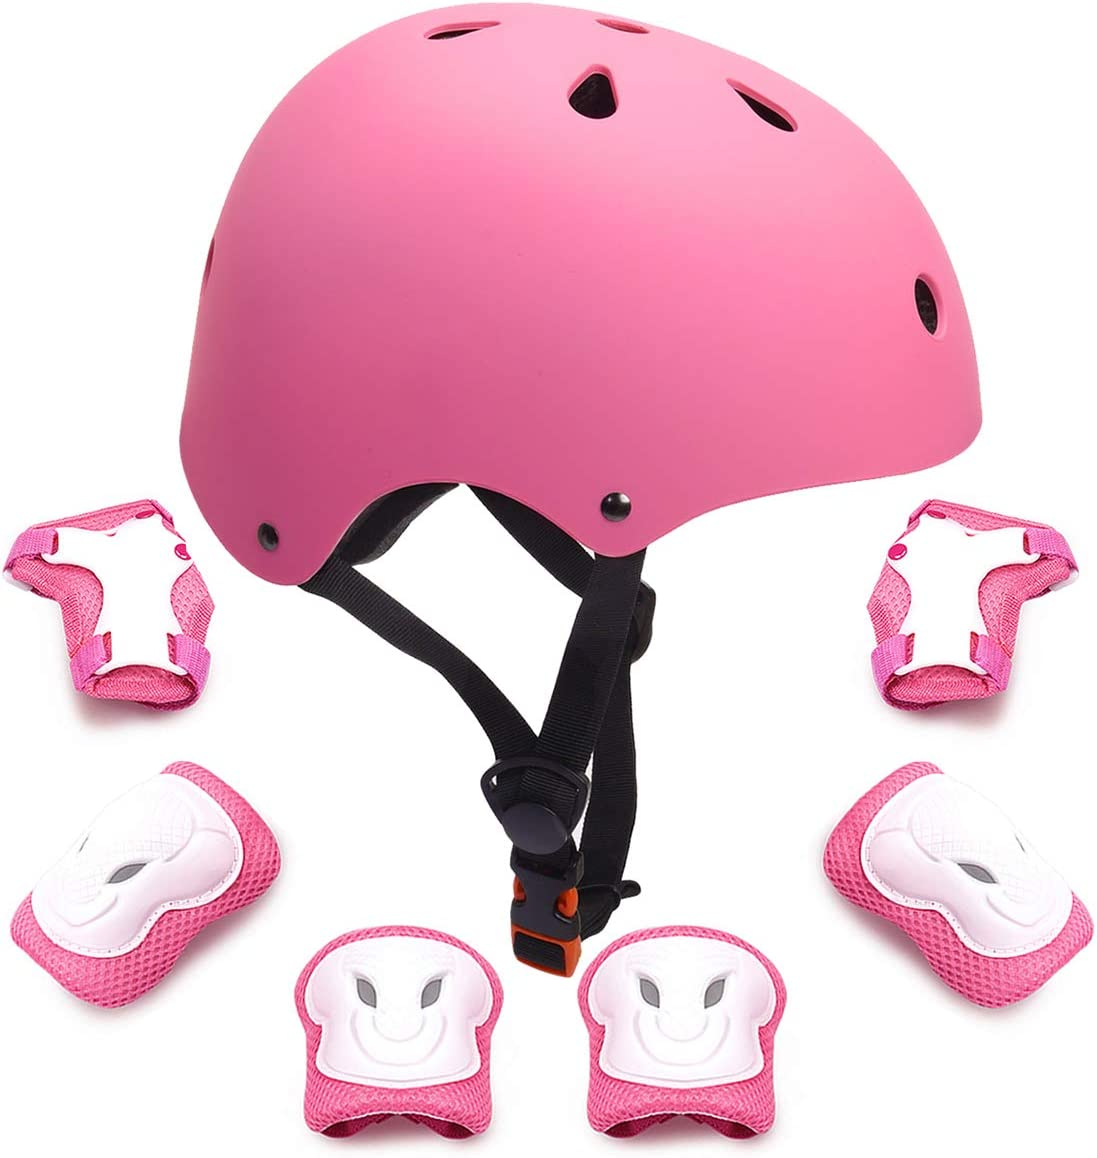 Kids Protective Gear Set Toddler Kids Bike Helmet Knee Elbow Pads Wrist Guards Pads for 3-8 Years Boys Girls Child Skateboard Rollerblading Cycling Scooter Hoverboard Sports Protective Gear Set 7Pcs